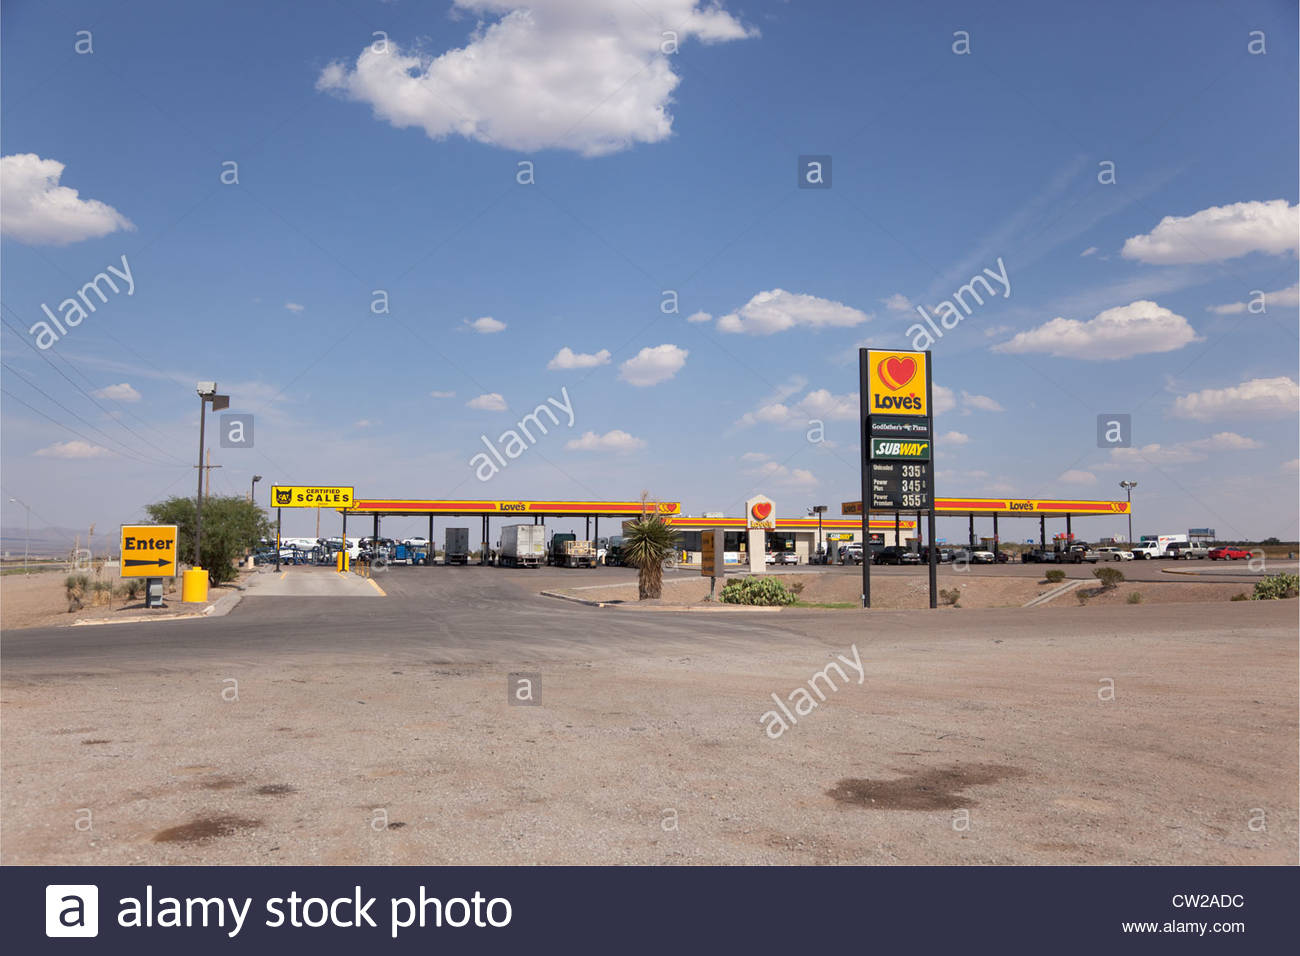 Love's Truck Stop Lordsburg New Mexico - Stock Image